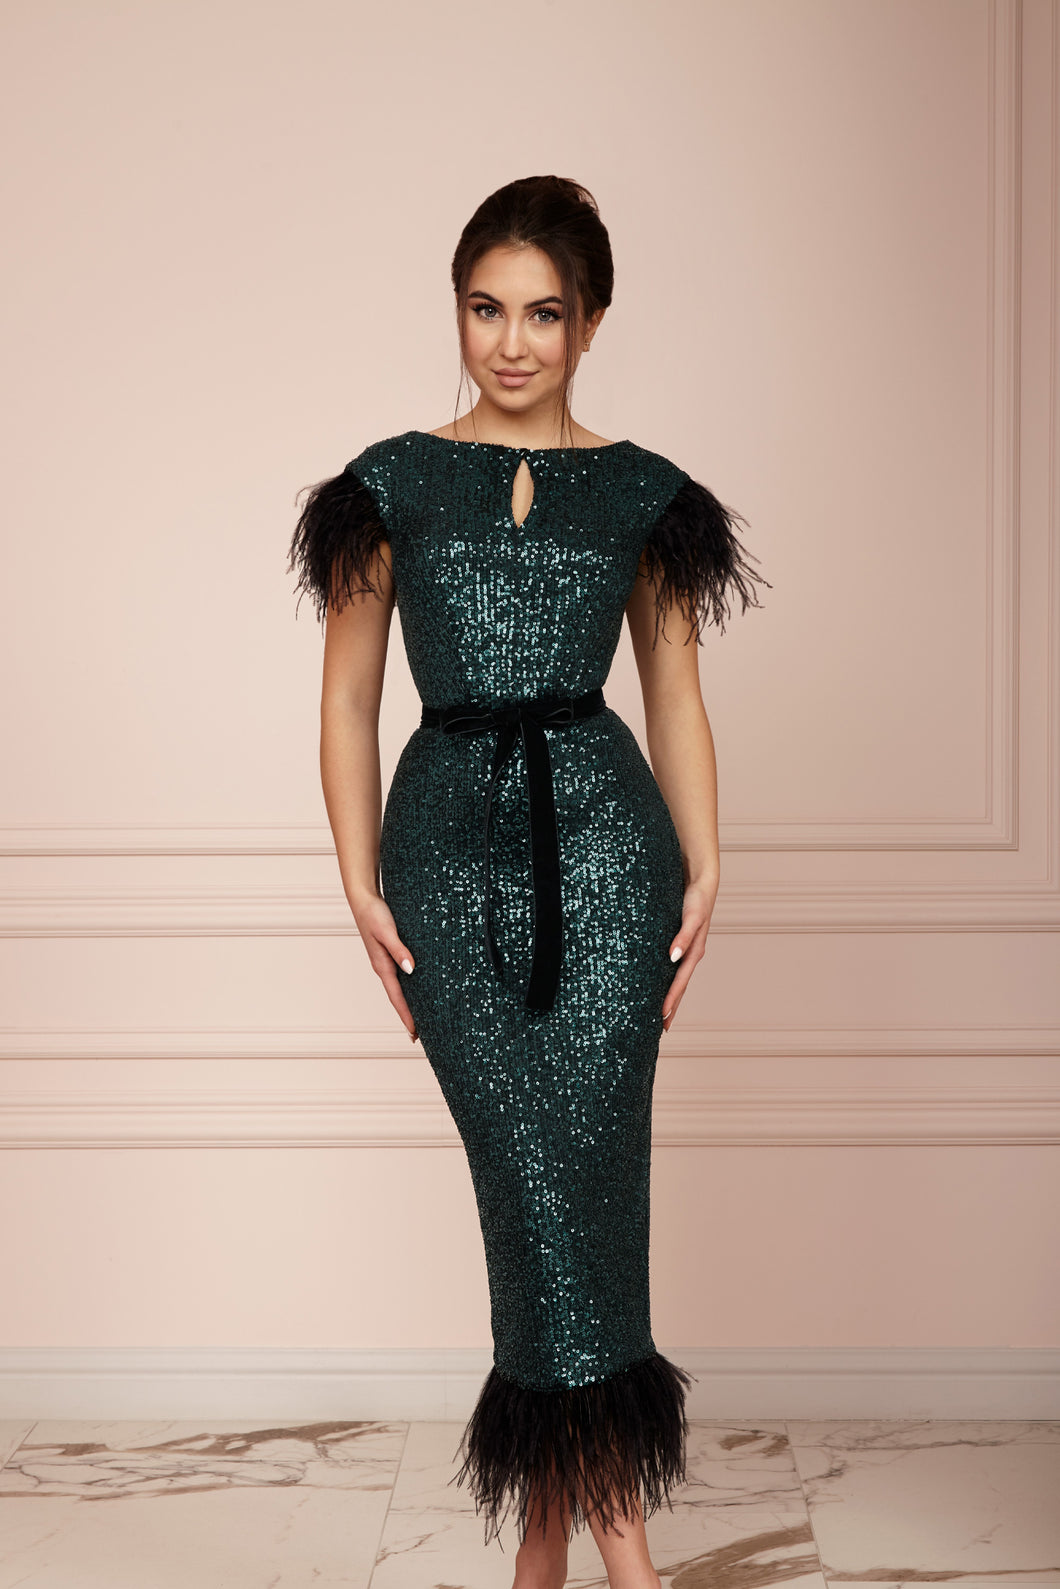 MALLINY ICON Emerald Green Sequin Midi Dress with Black Feathers